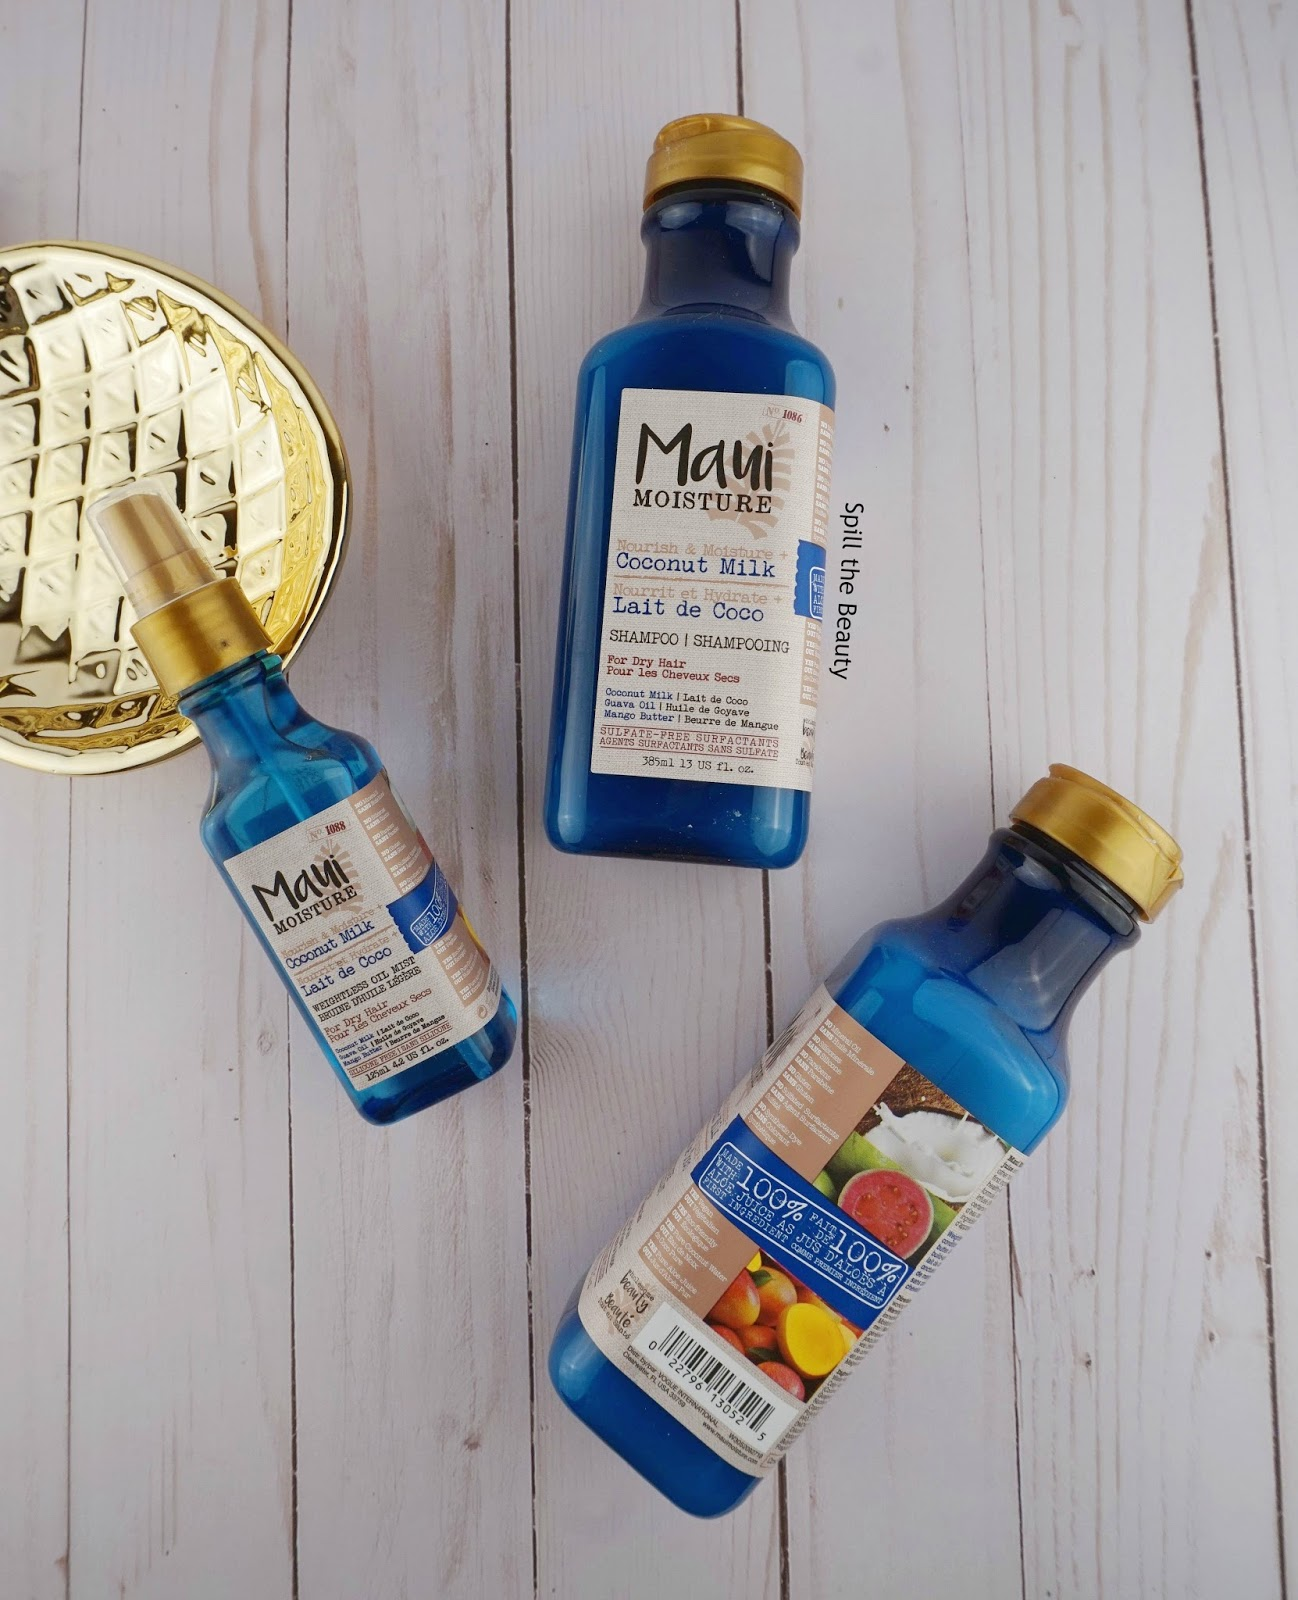 Maui Moisture 'Coconut Milk' Collection – Information